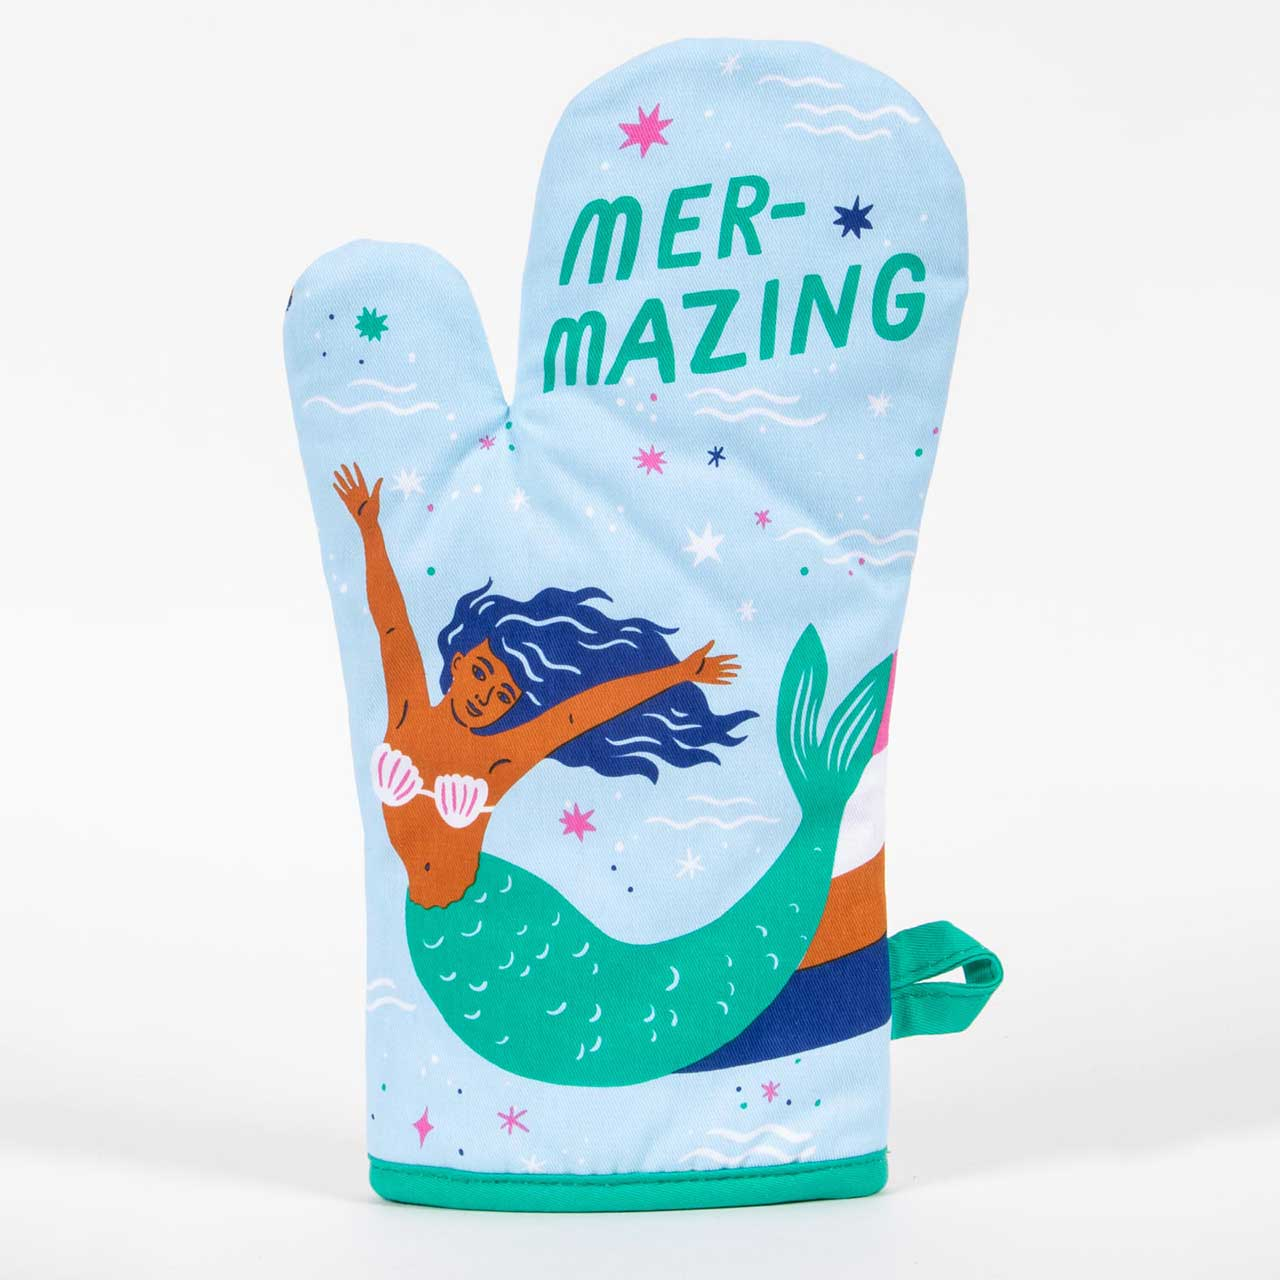 Mer-mazing - One Oven Mitt by Blue Q | The Design Gift Shop